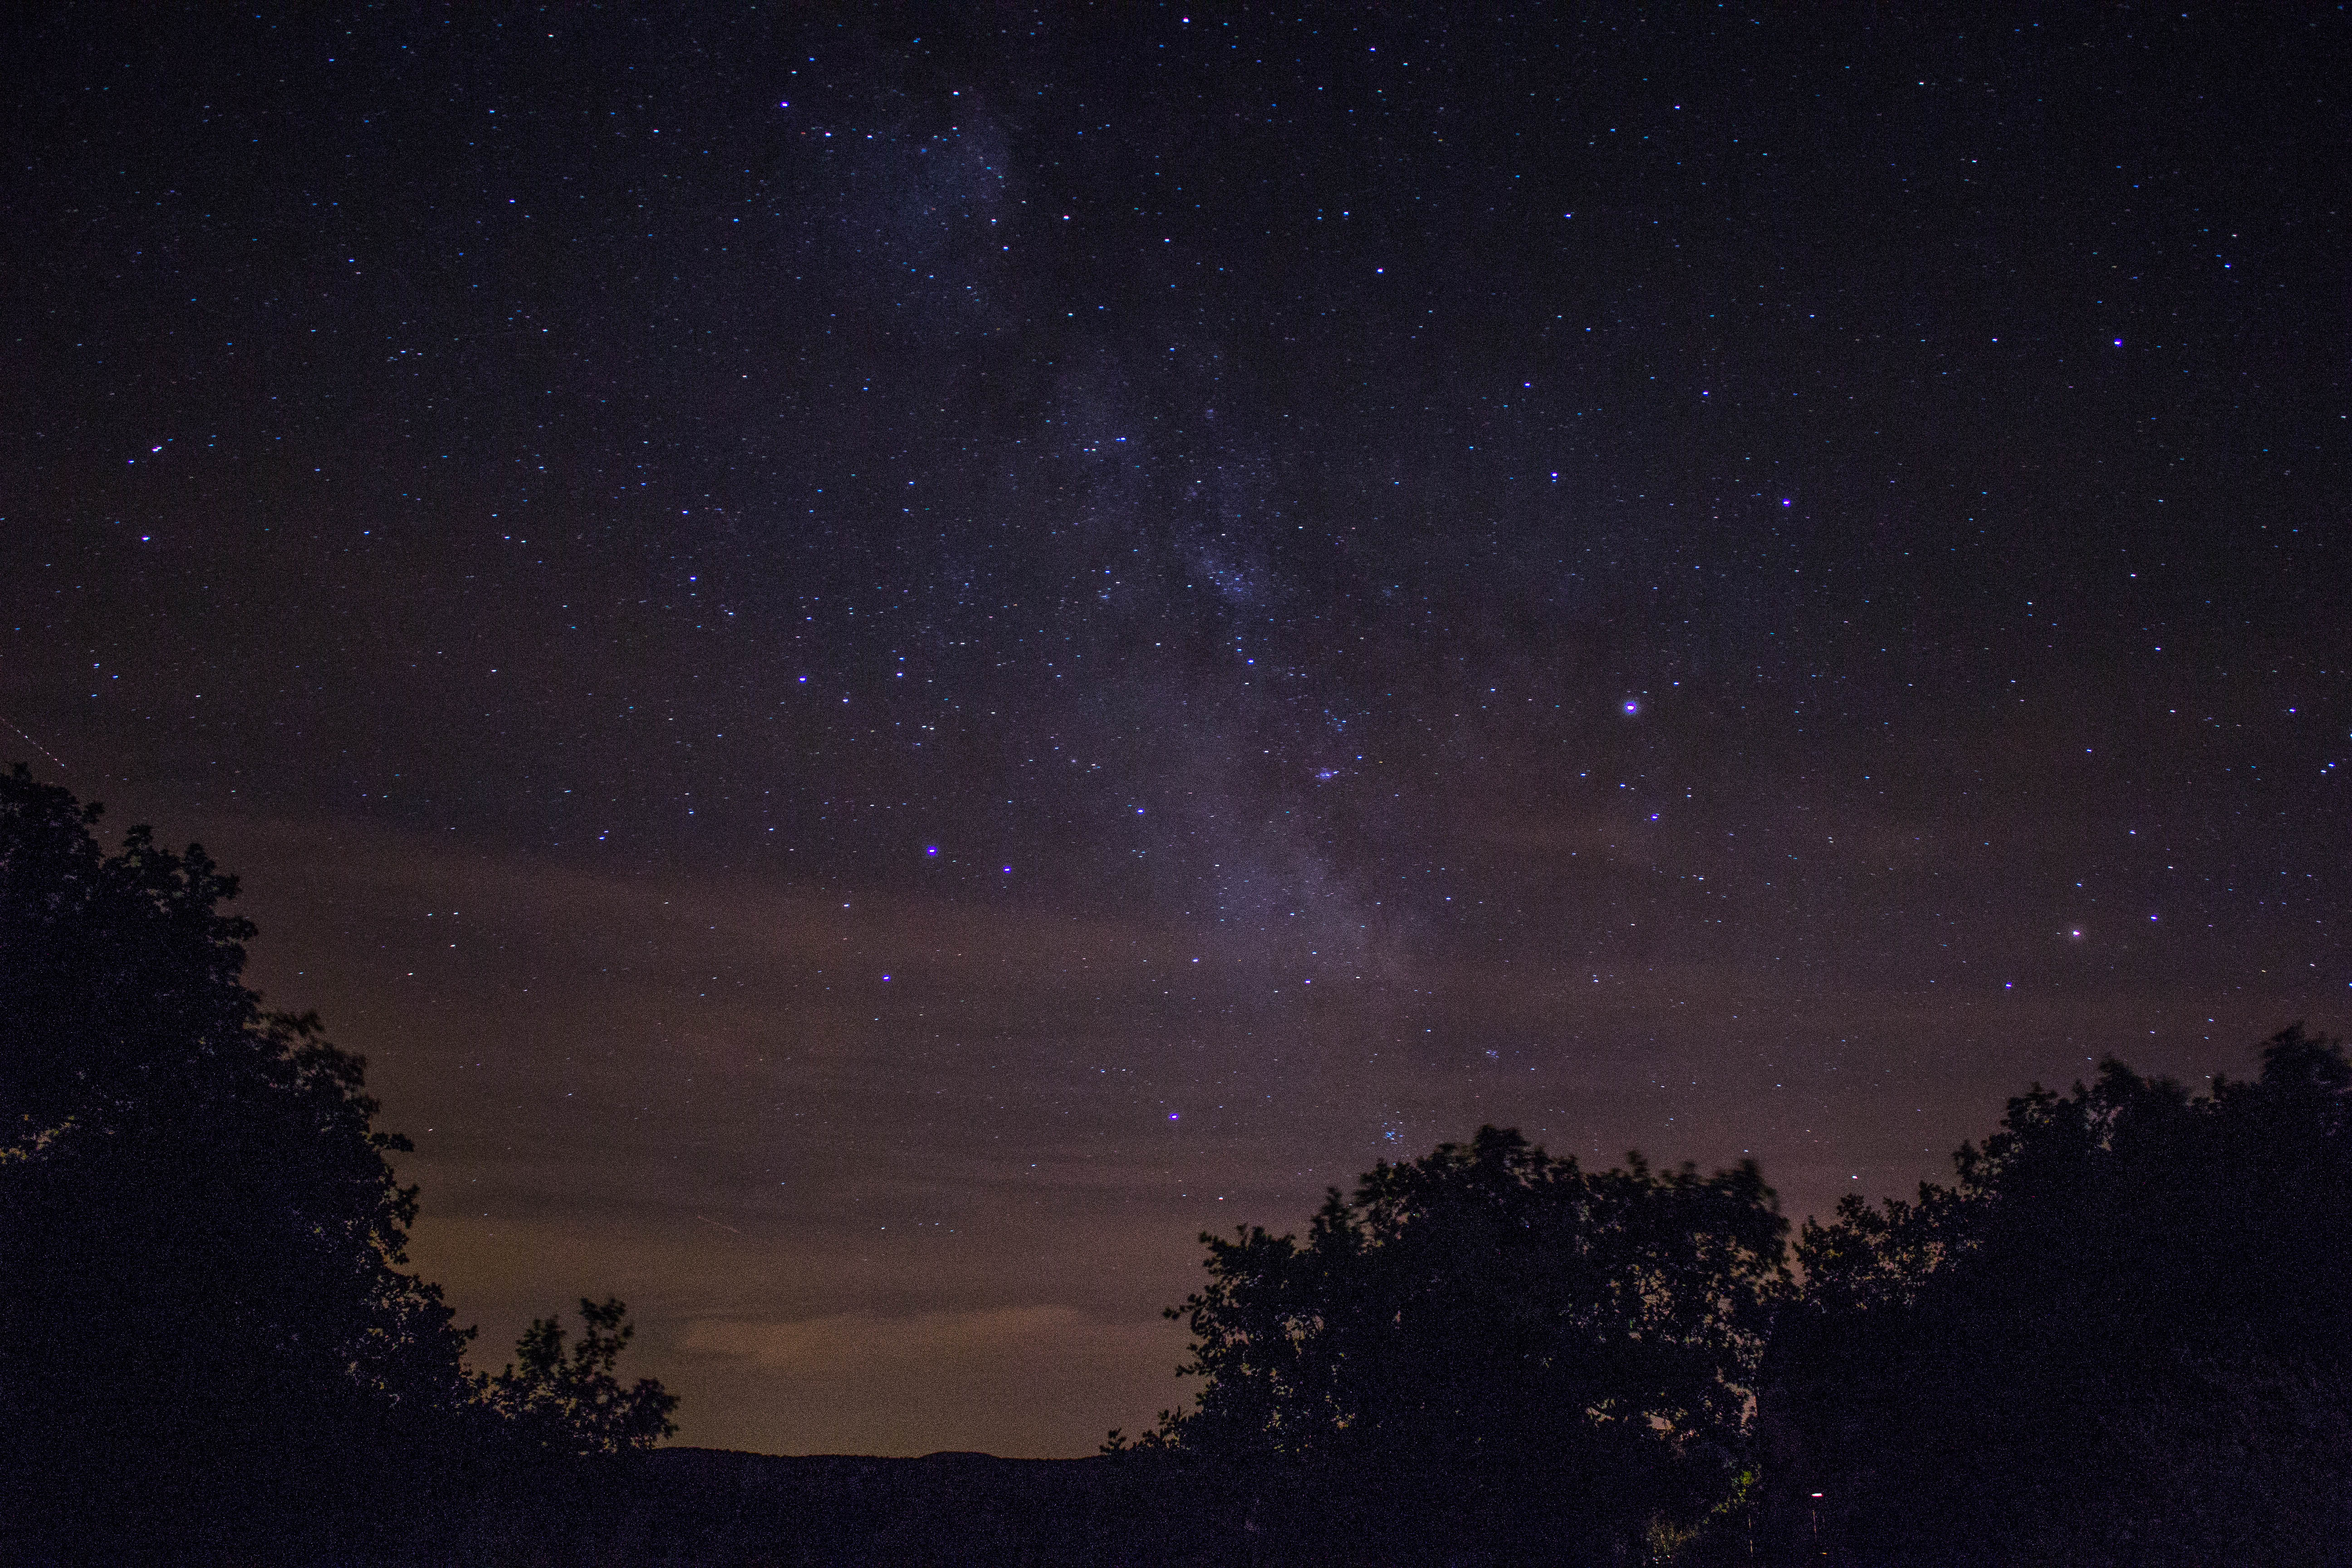 stars  outdoor  night and sky hd photo by antonin allegre